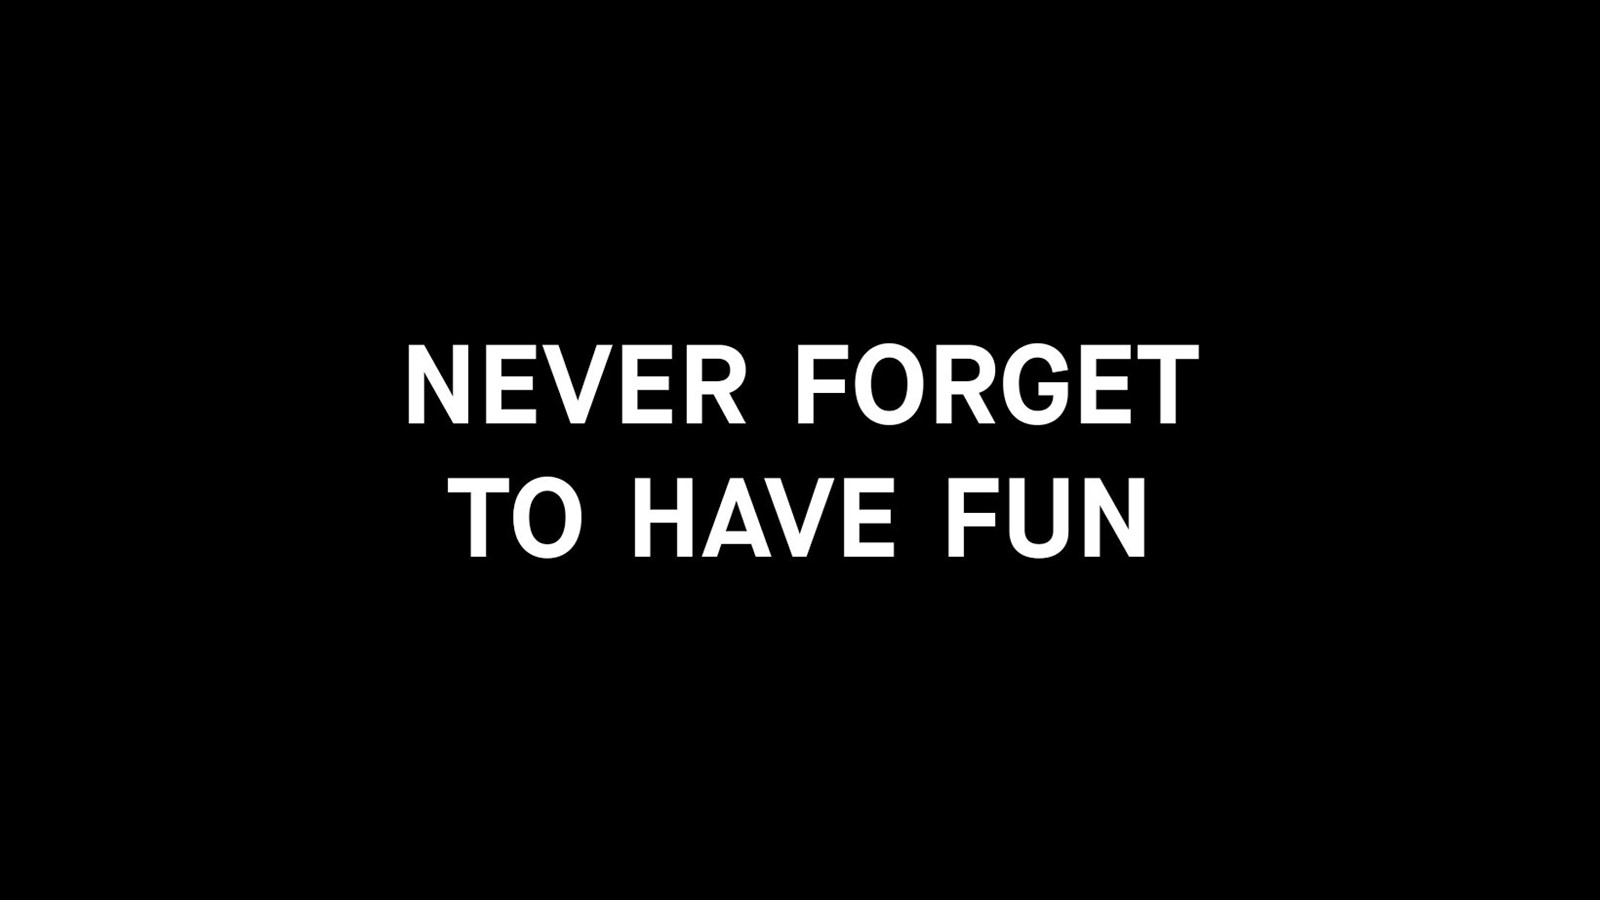 02-never-forget-to-have-fun